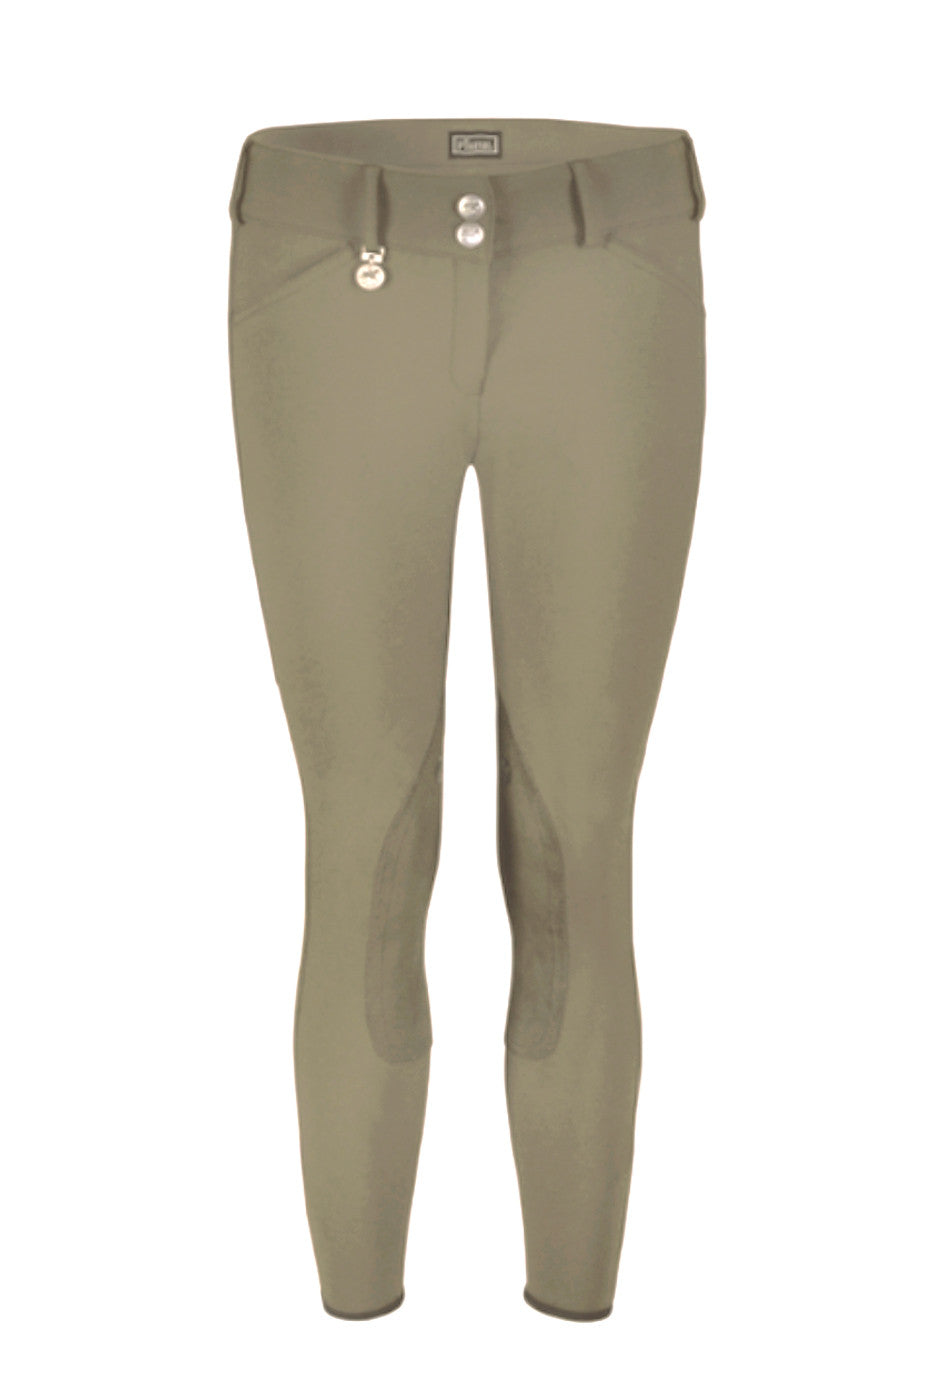 Pikeur Ciara Front Zip Breeches - North Shore Saddlery